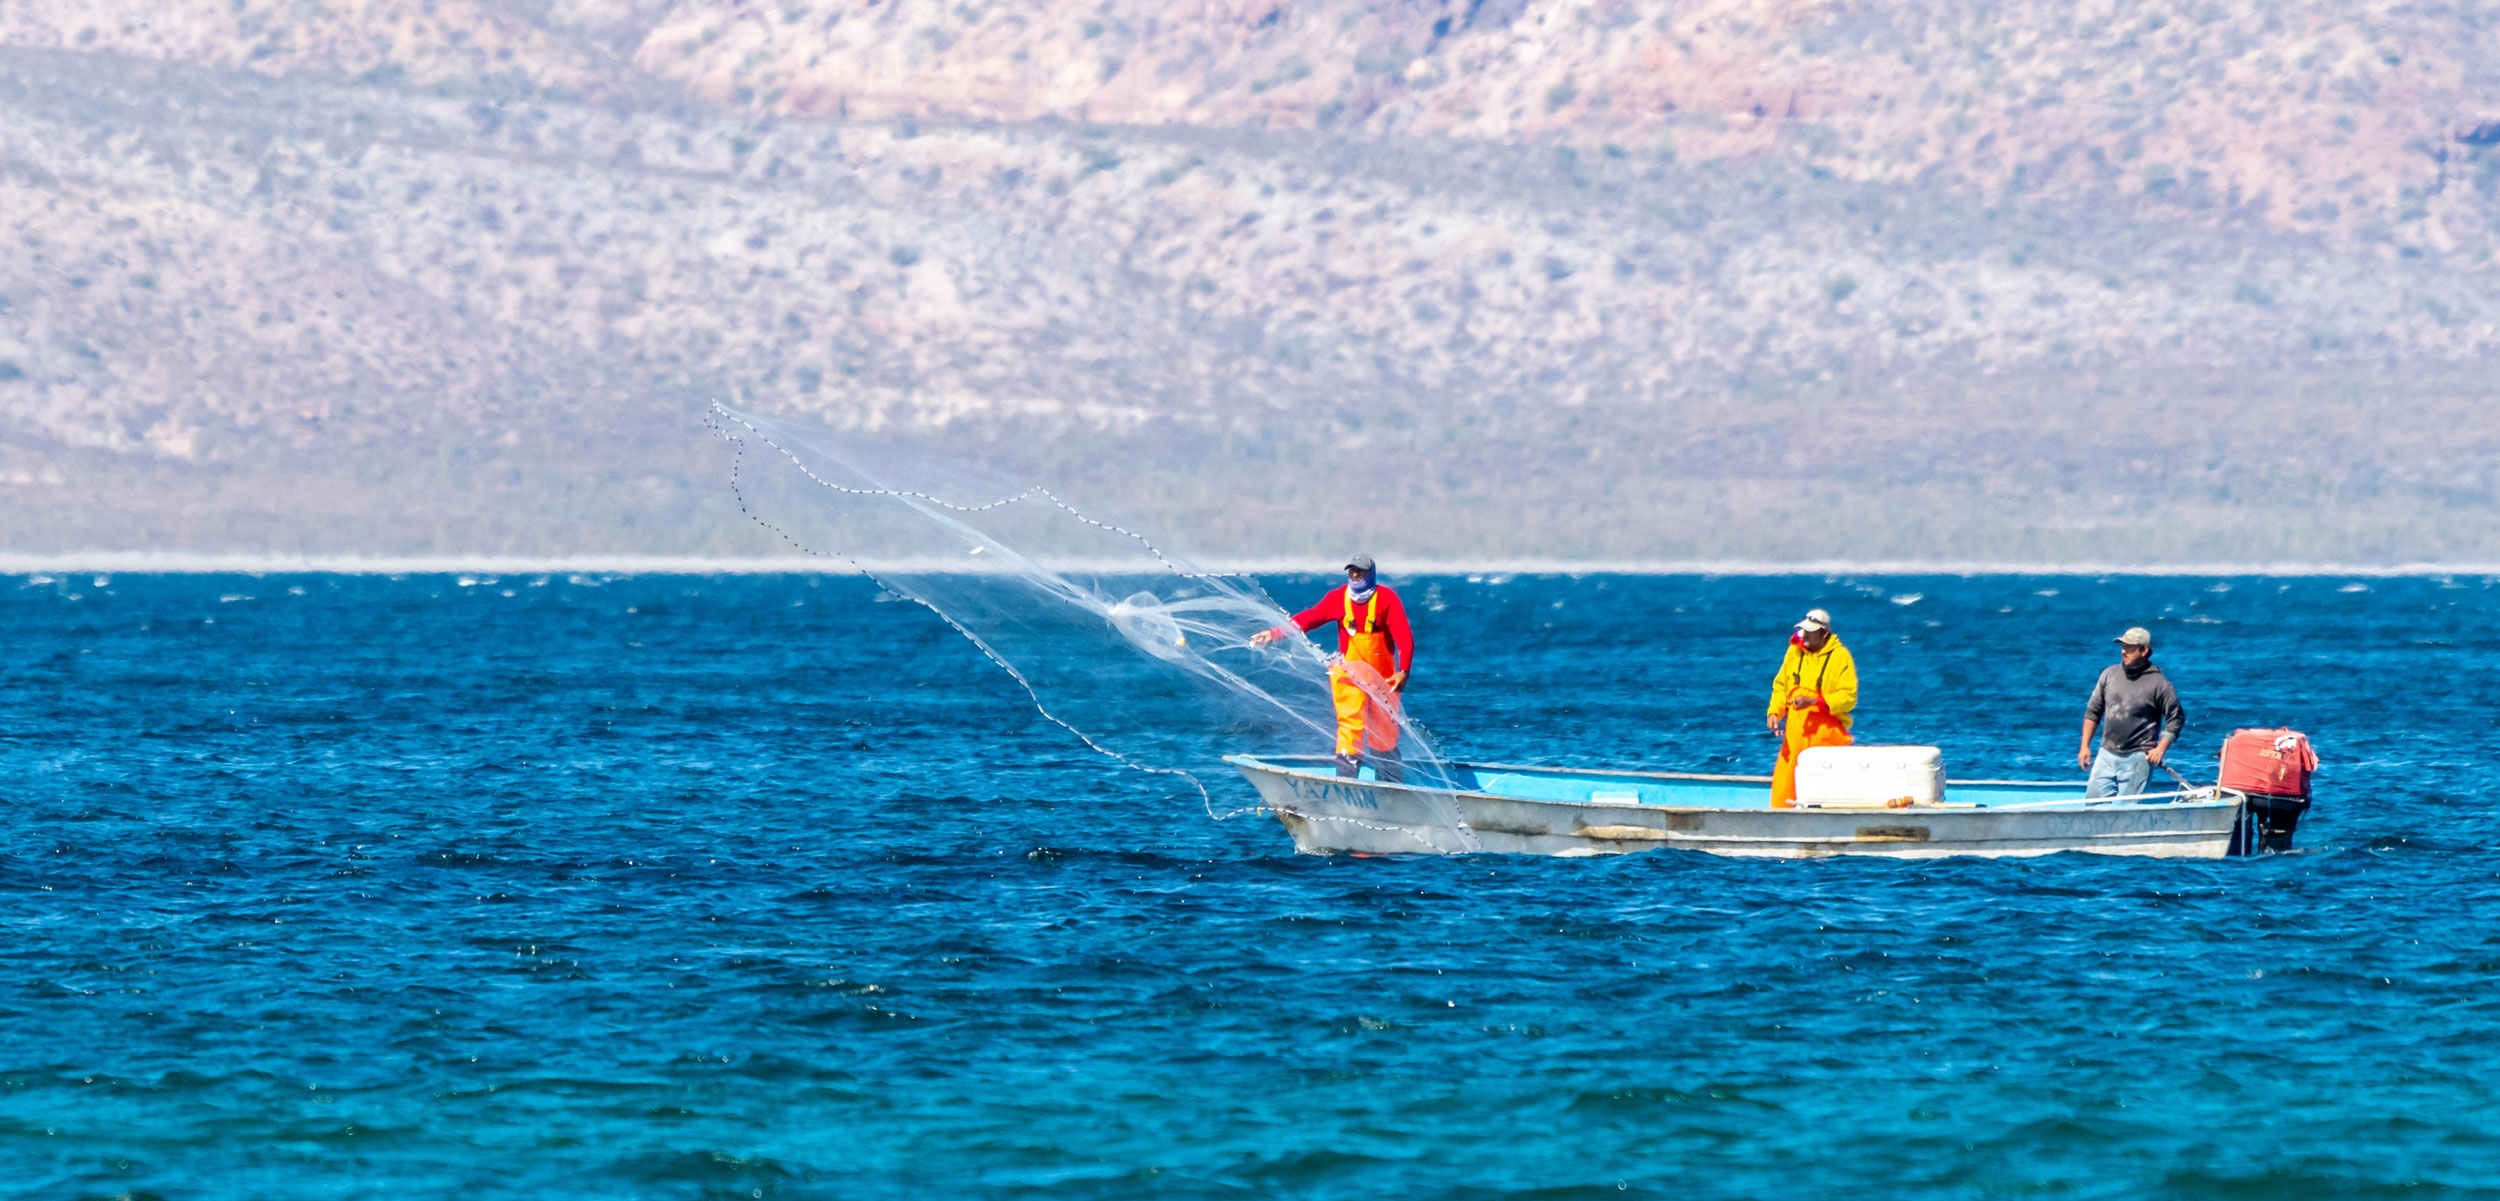 Fishermen in a small boat casting a fishing net in Baja California Sur, Mexico